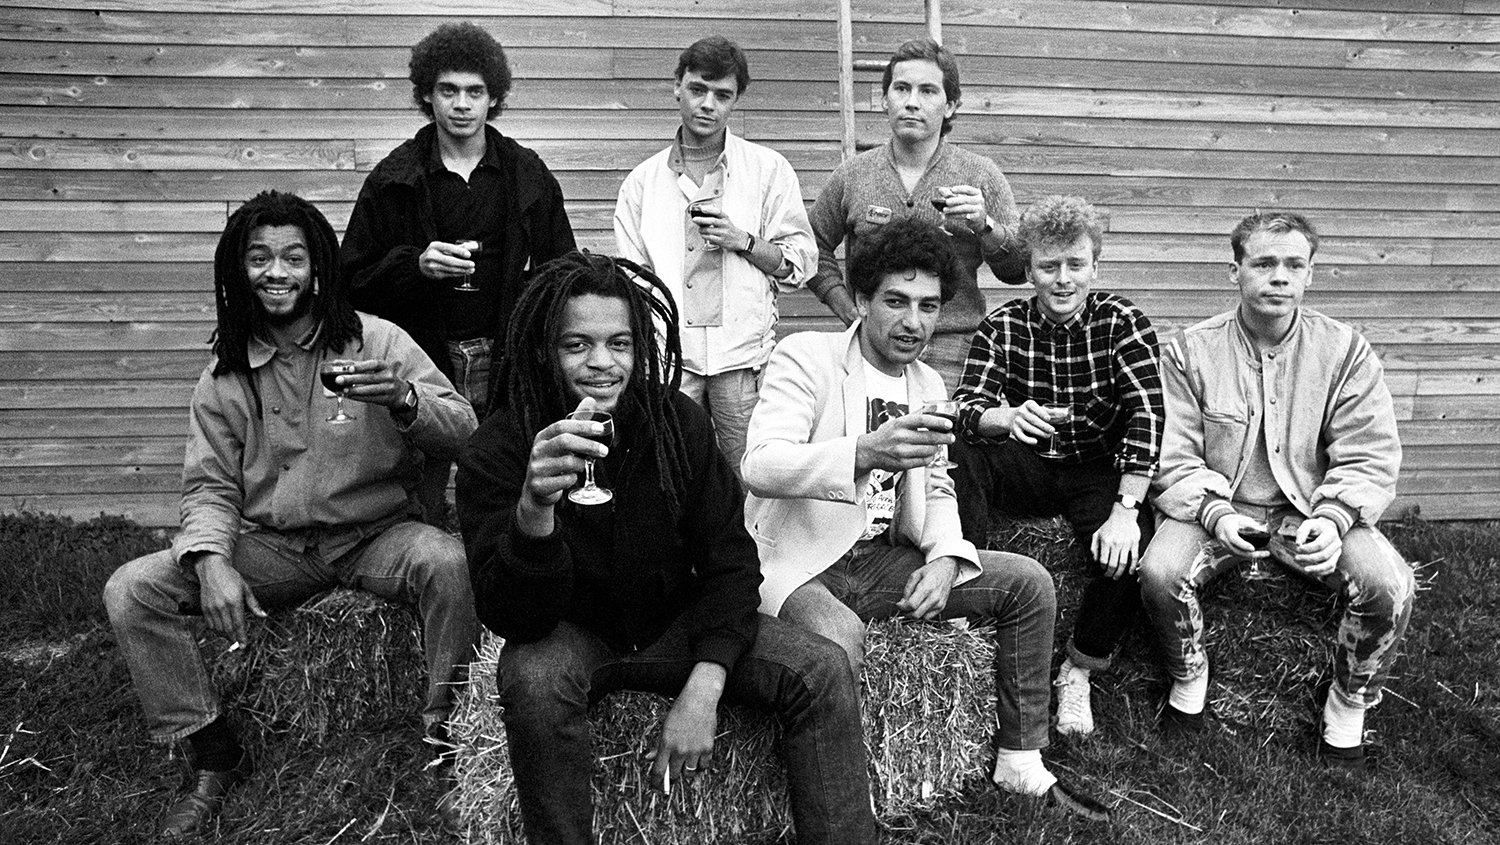 UB40-portrait-wine-1983-billboard-fea-1500